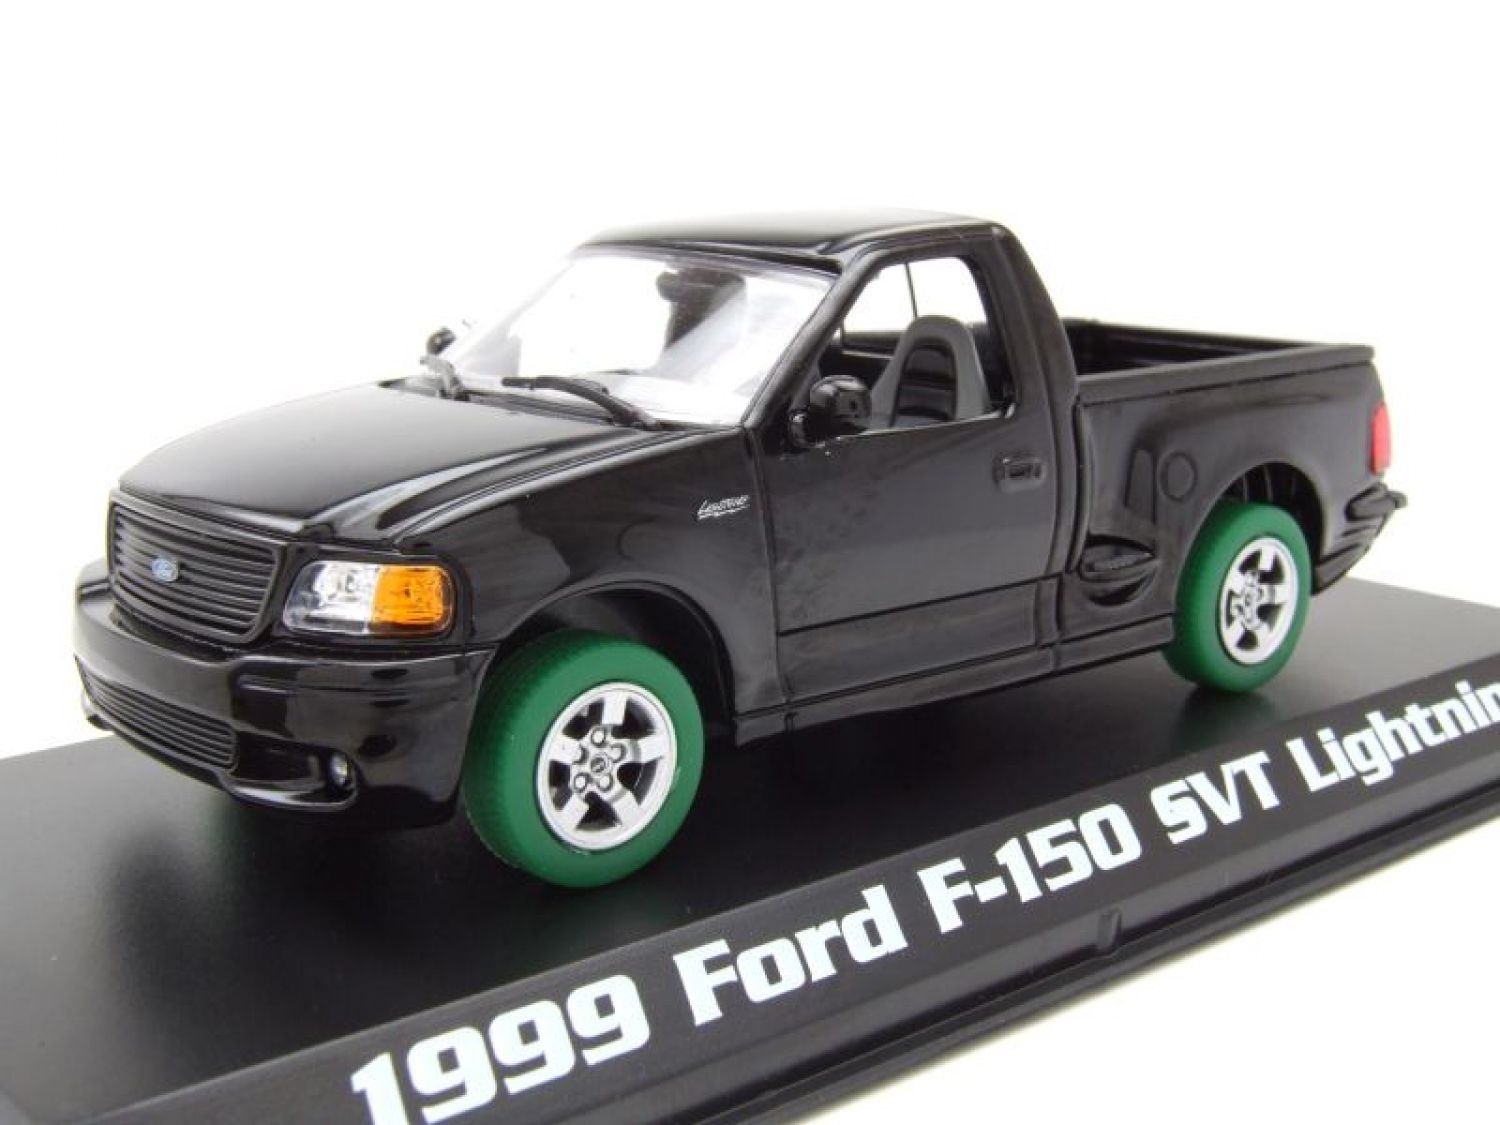 FORD f-150 Pick-up SVT Relámpago 1999 Negro, verde Machine, Coche ...